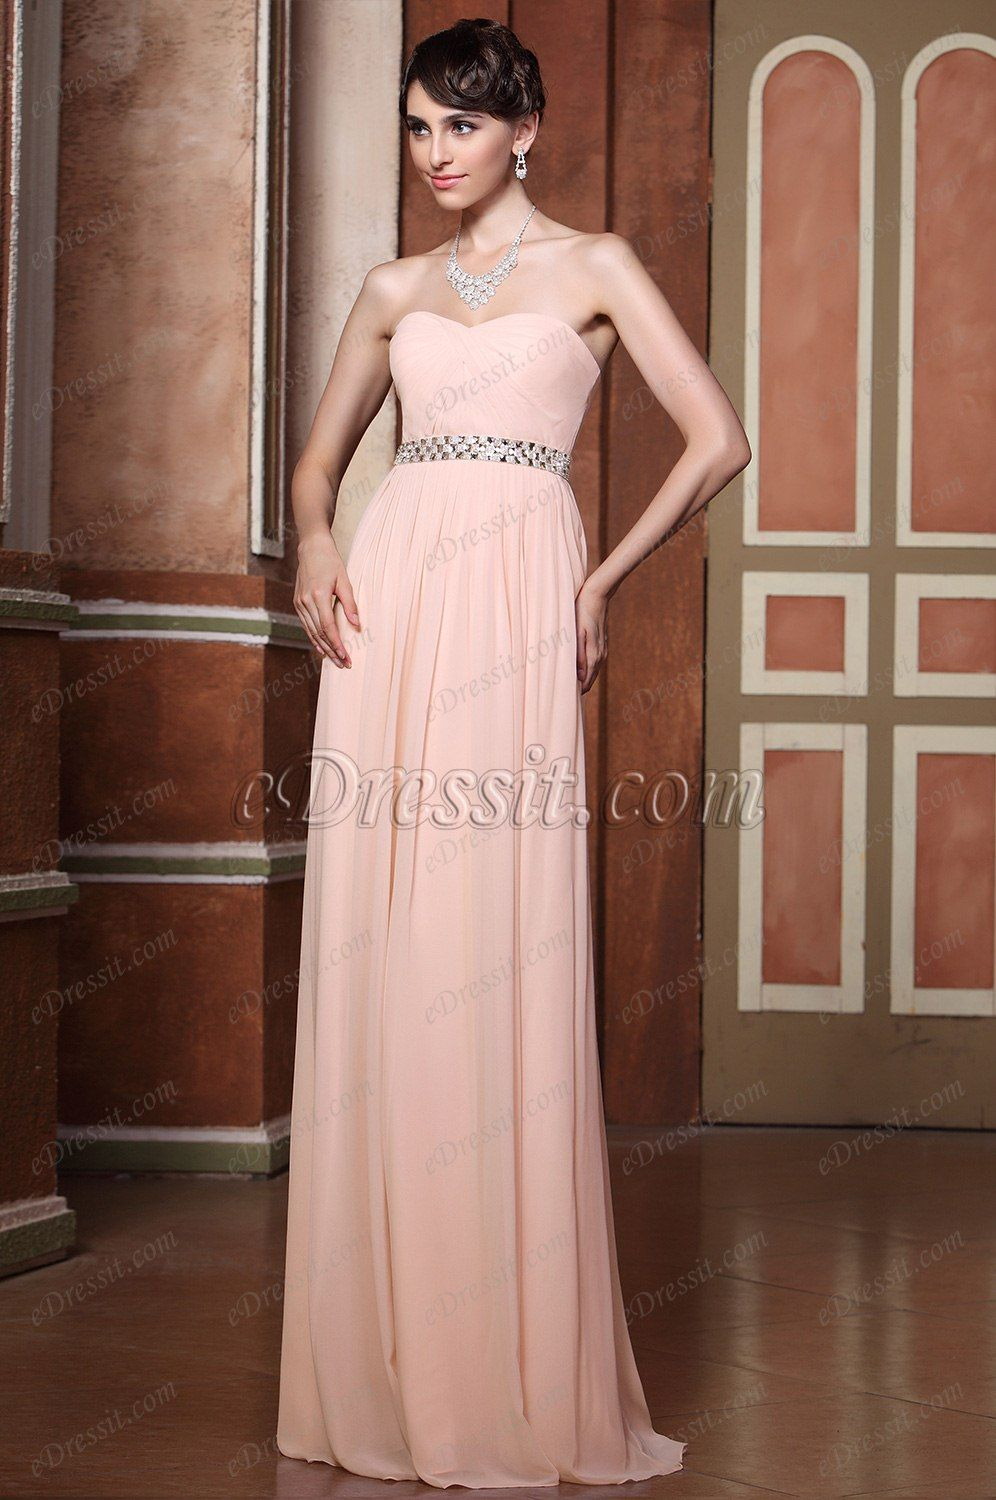 Simple Strapless Sweetheart Neck Pleated Evening Gown Bridesmaid ...